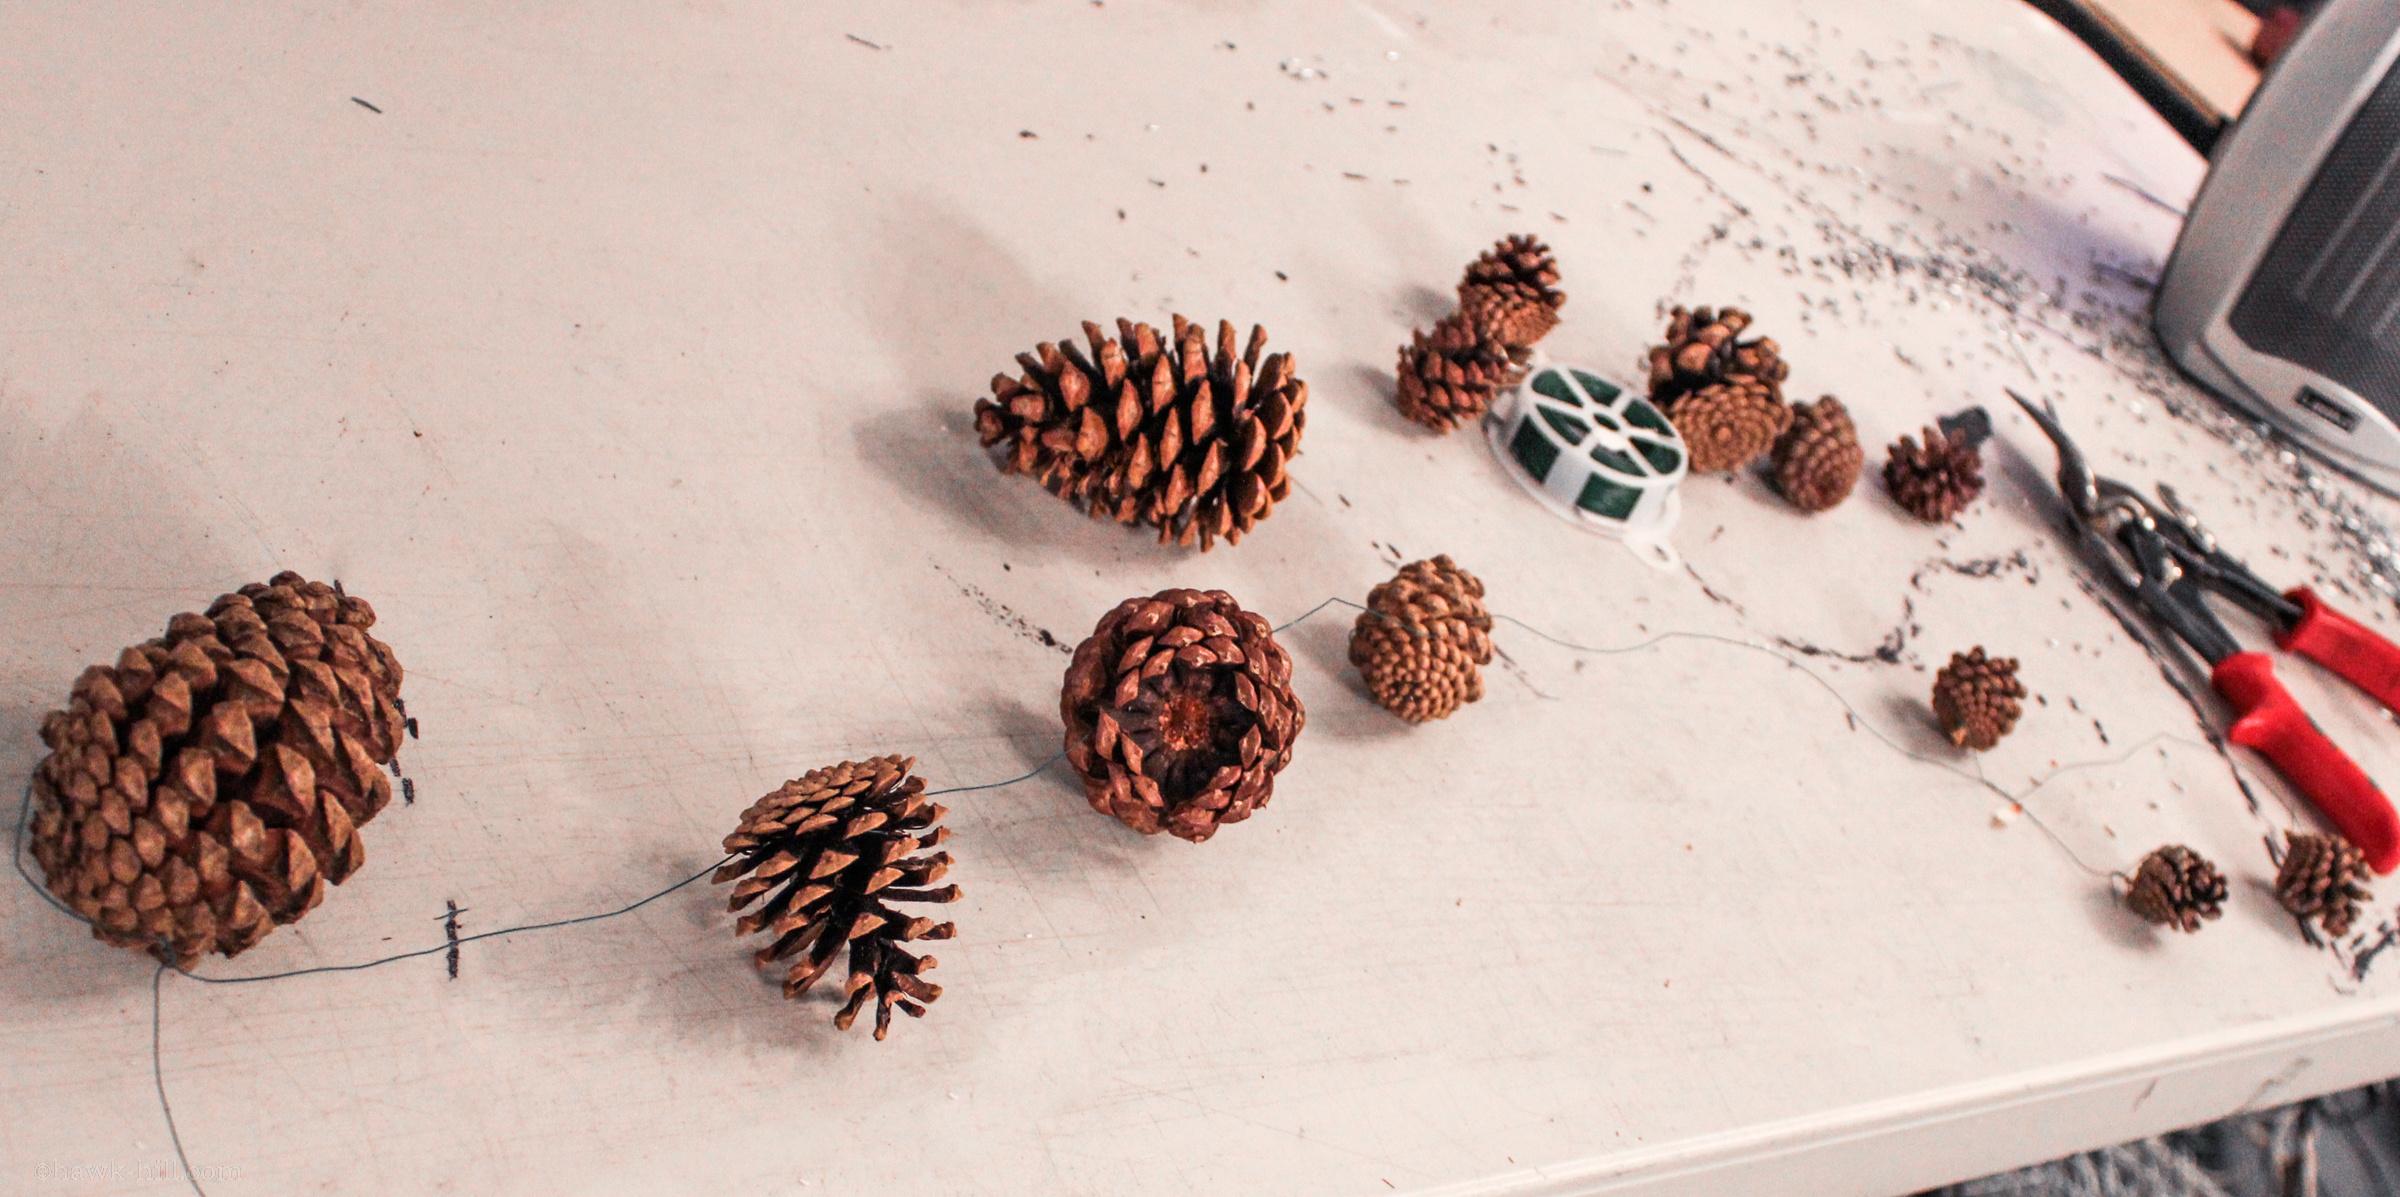 pinecones on a table, wired together.